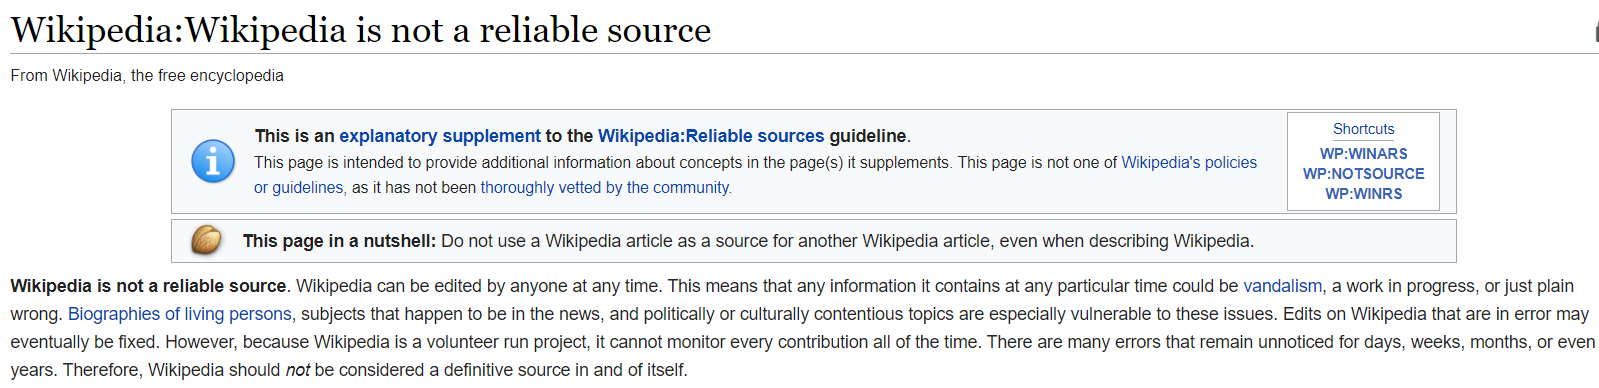 Wikipedia is not a reliable source